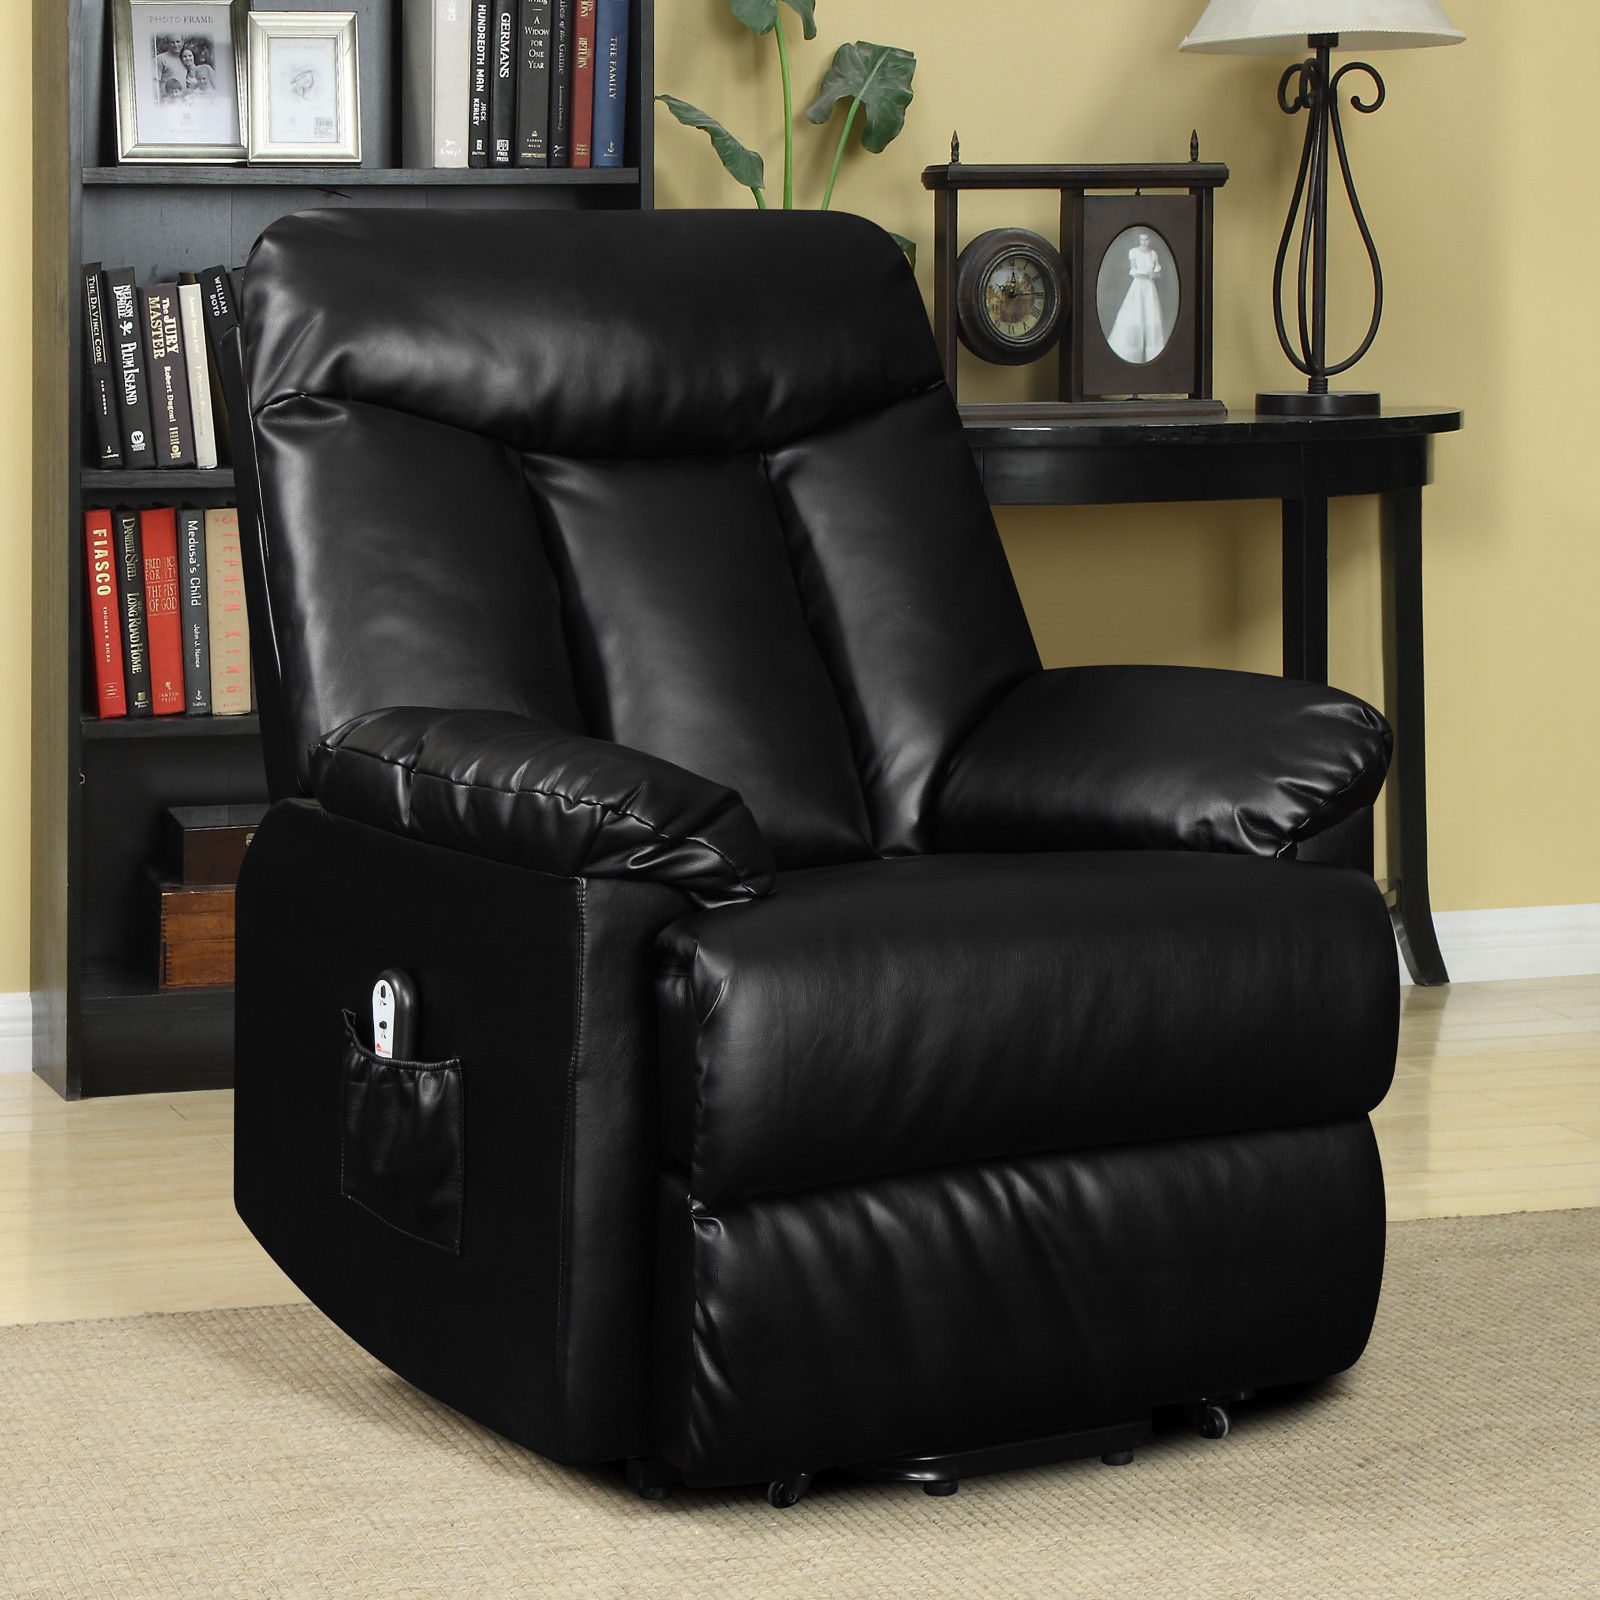 electric lift chair recliner black leather power motion lounge seat